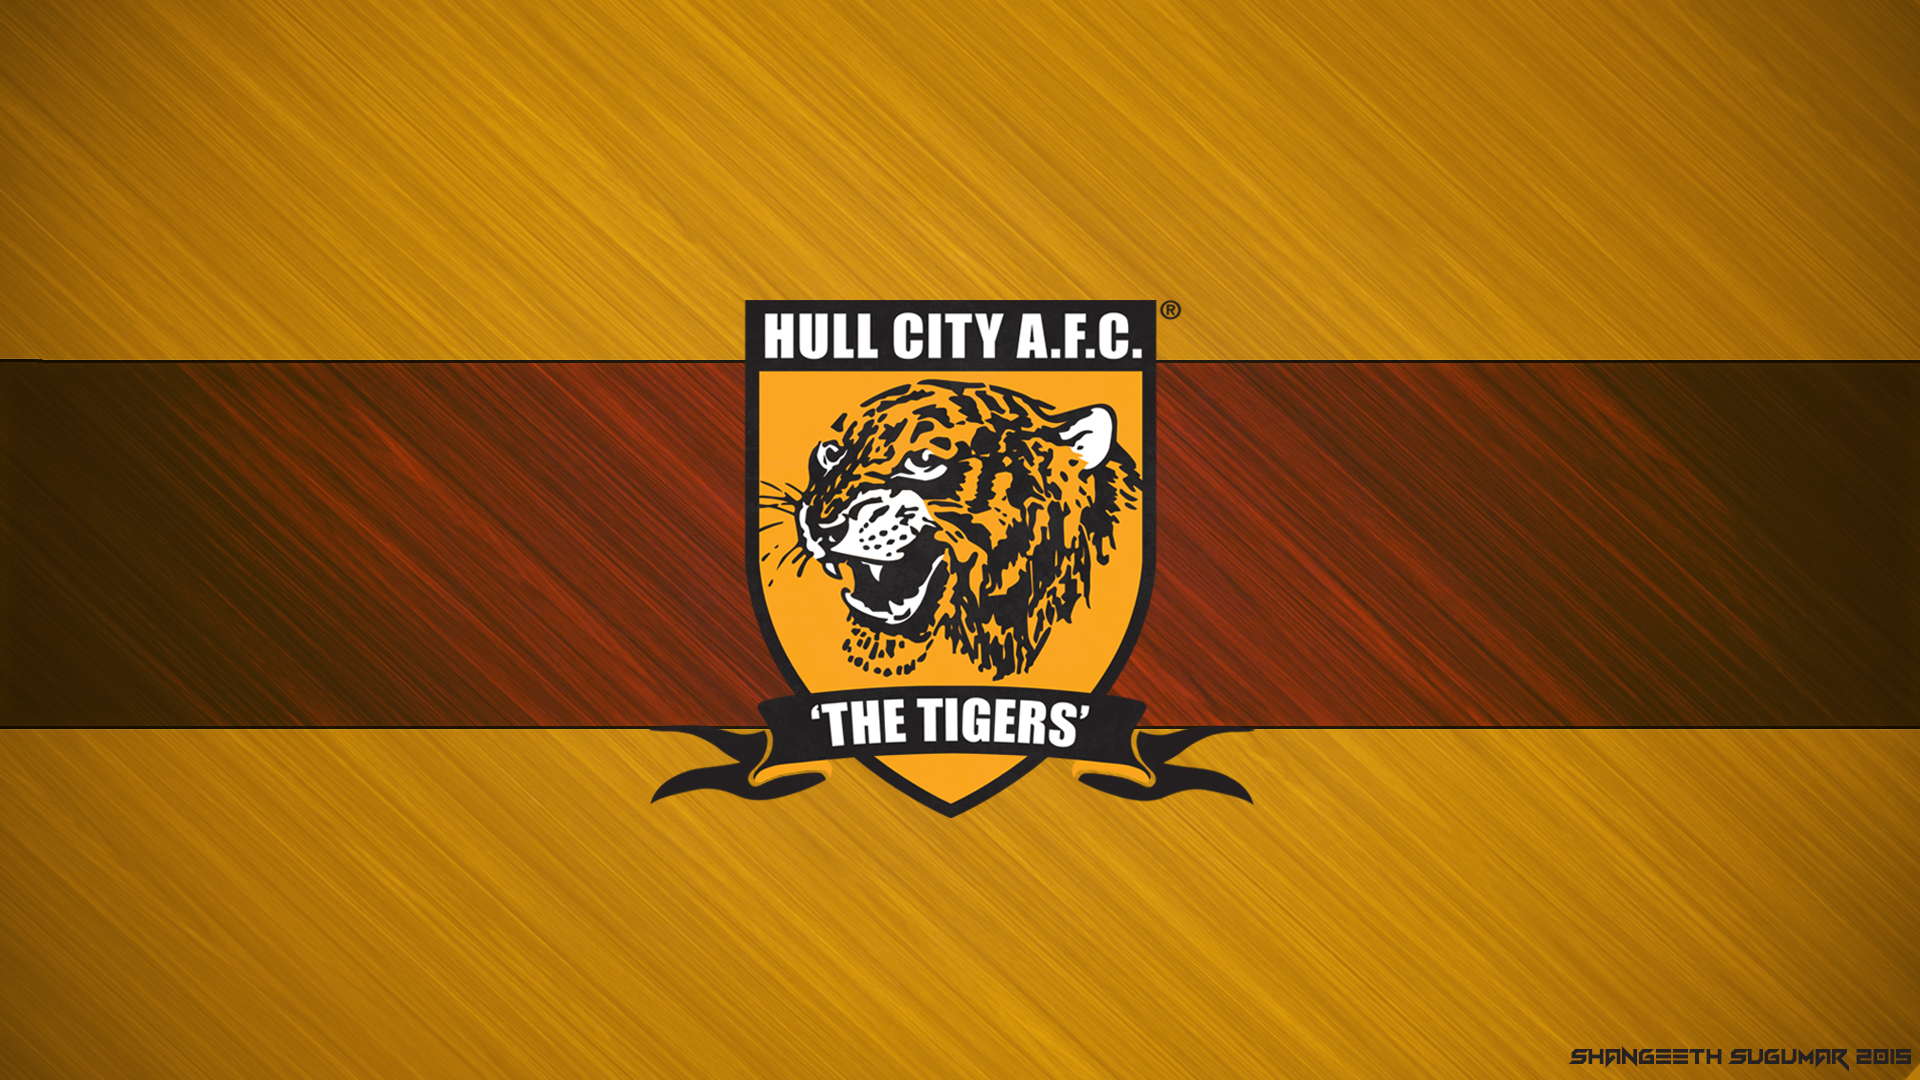 Hull City AFC Wallpapers HD | Full HD Pictures: fullhdpictures.com/amazing-hull-city-afc-hq-wallpapers.html/hull...